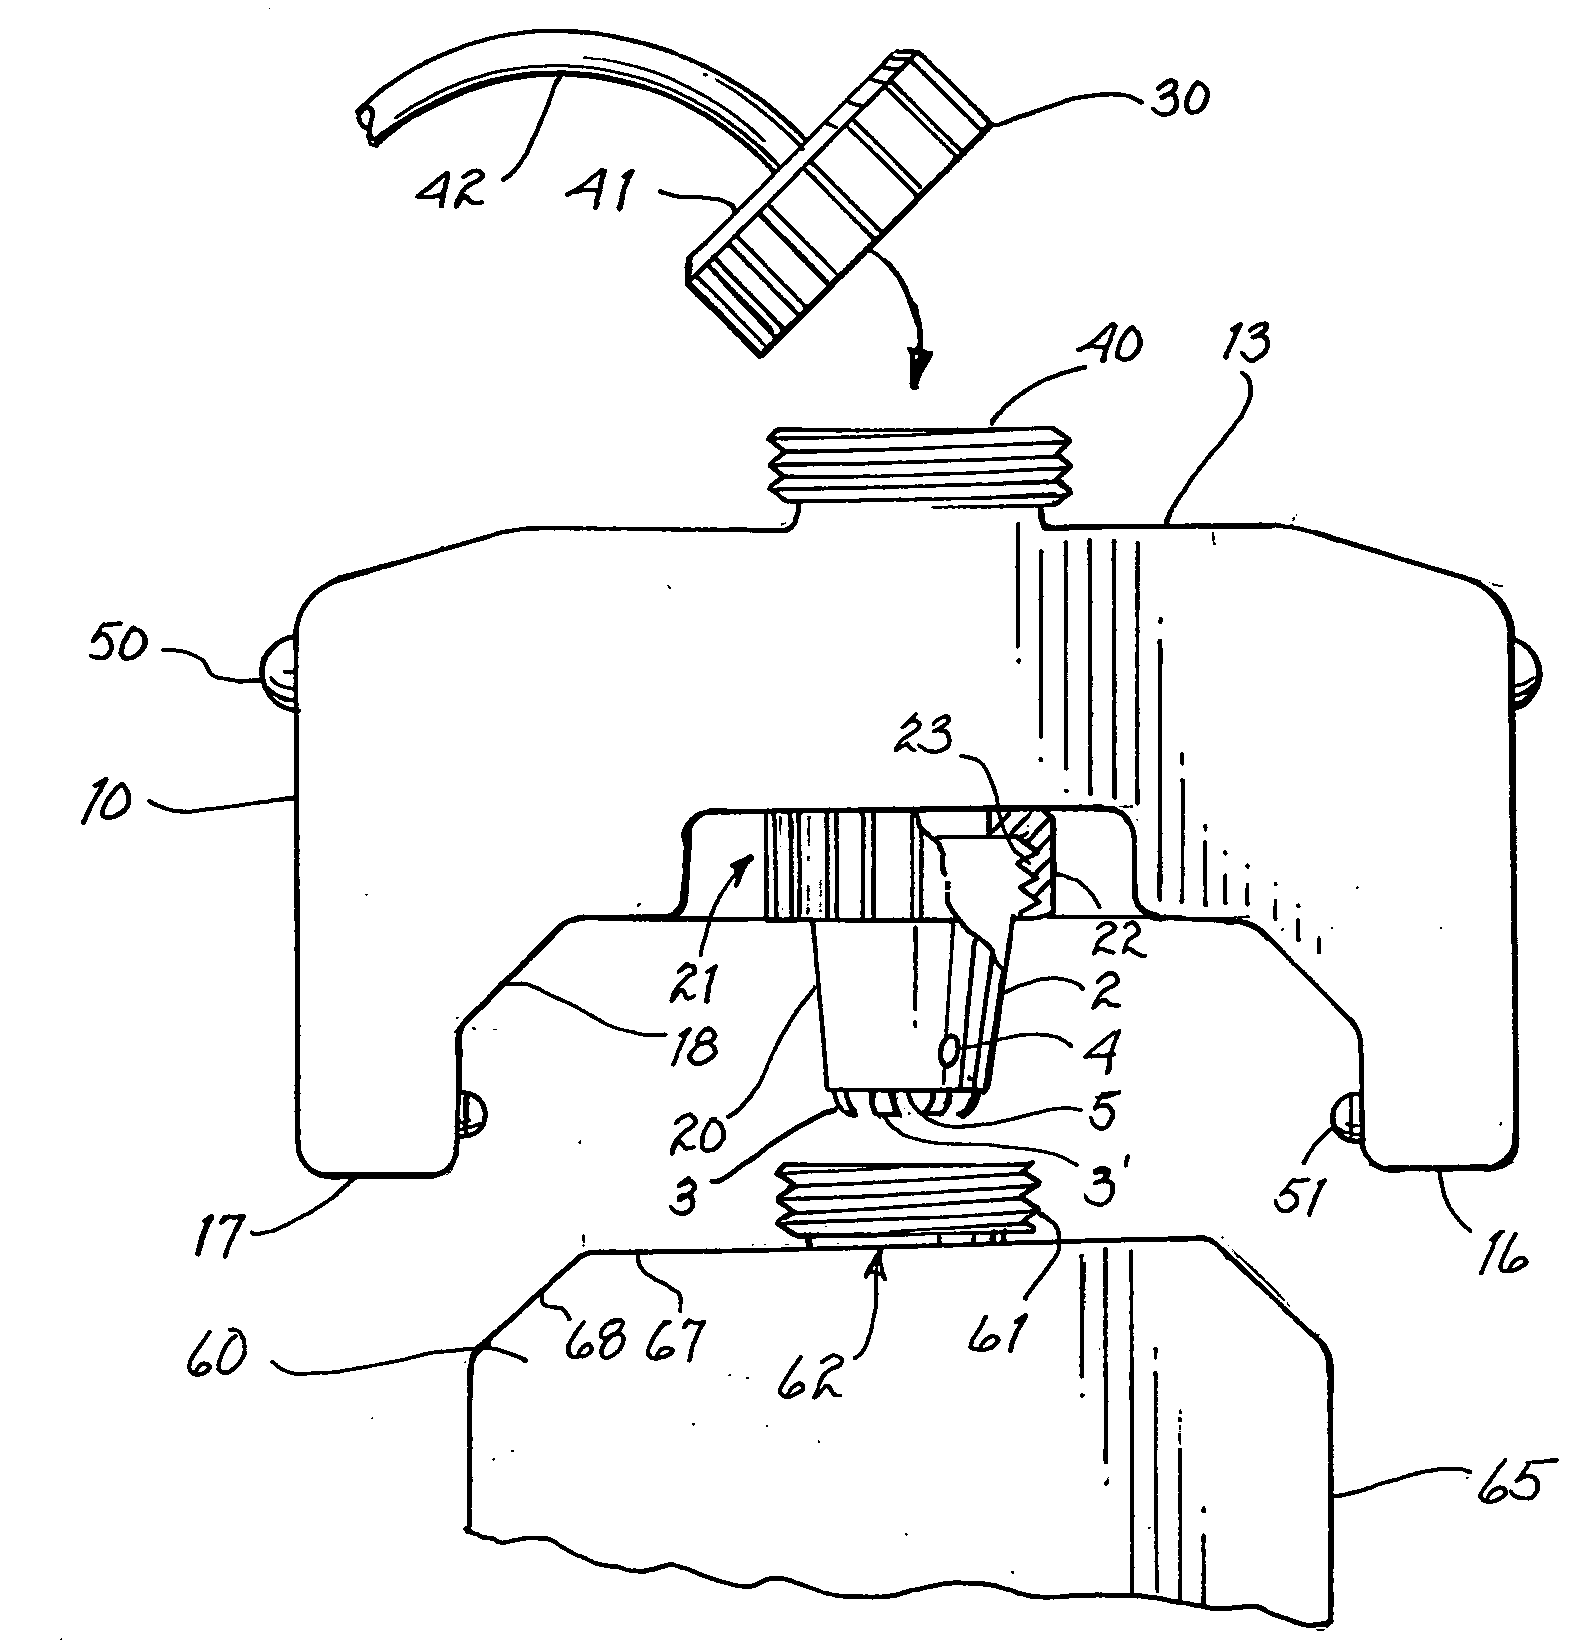 patent us20090101220 - removable auxiliary area fuel tank for motorcycles